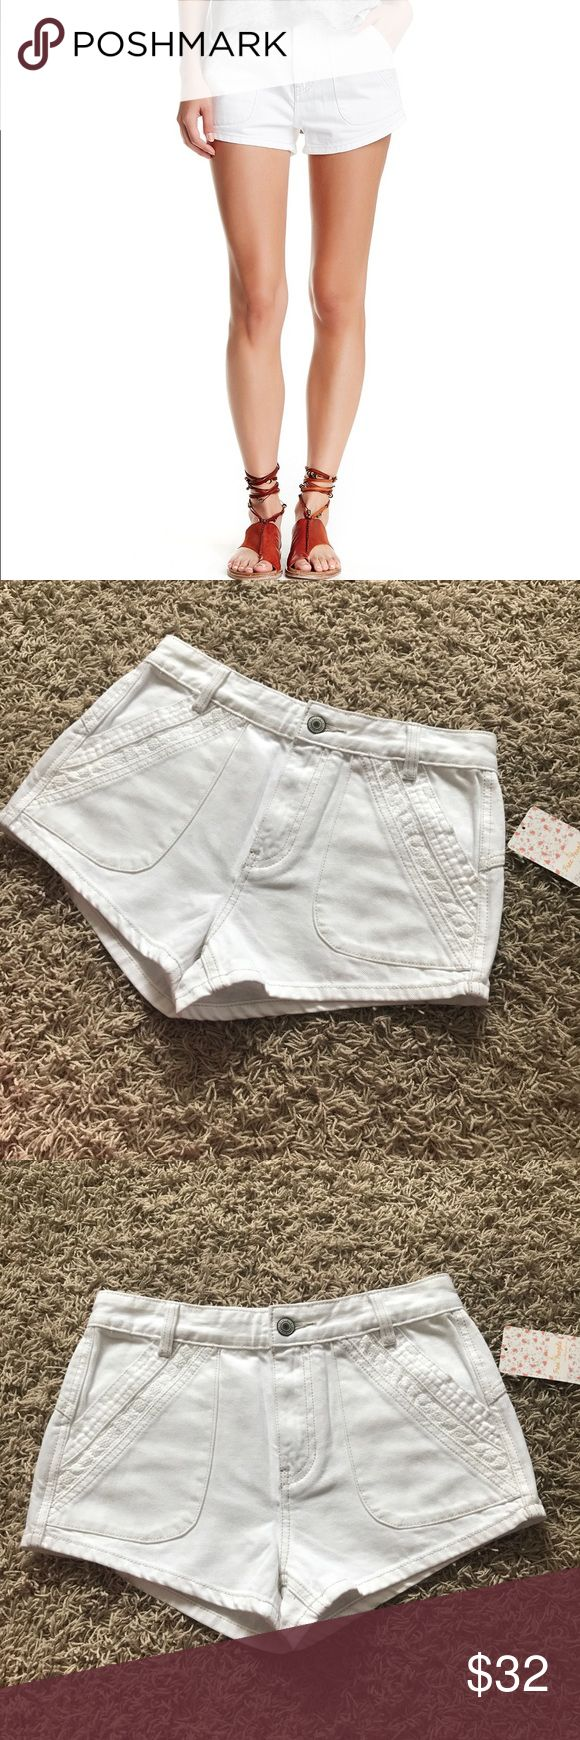 New Free People Sweet Surrender a Denim Shorts Free People Sweet Surrender Denim Shorts •New with tags •In White •Retails for $88  Check out my other listings- Nike, adidas, Michael Kors, Kate Spade, Miss Me, Coach, Wildfox, Victoria's Secret, PINK, Under Armour, True Religion, Ugg Australia, Free People and more! Free People Shorts Jean Shorts